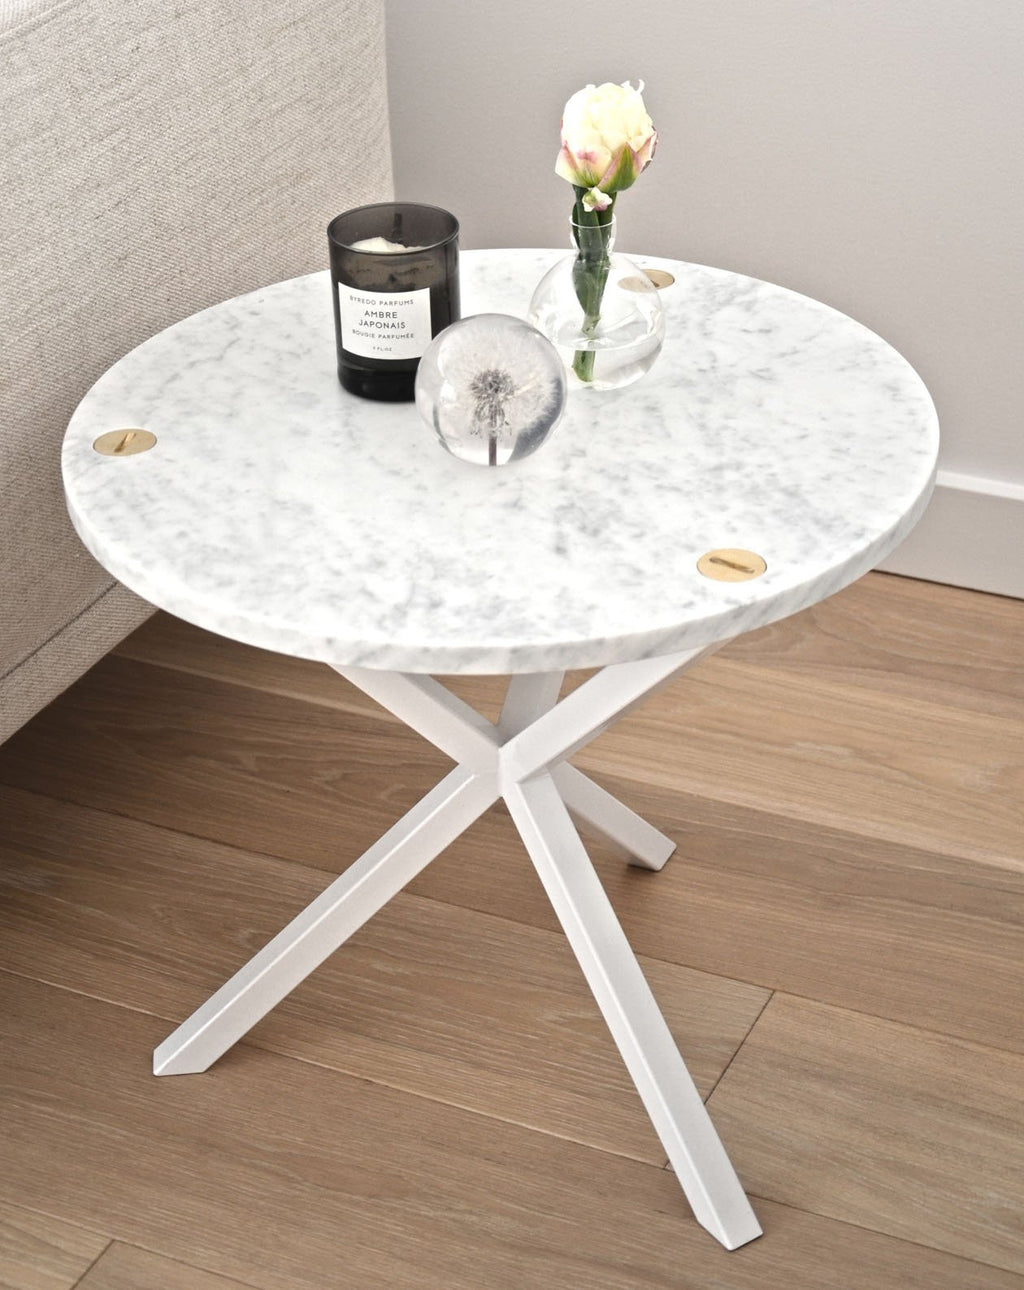 NEB Round Side Table with Top in Carrara Marble